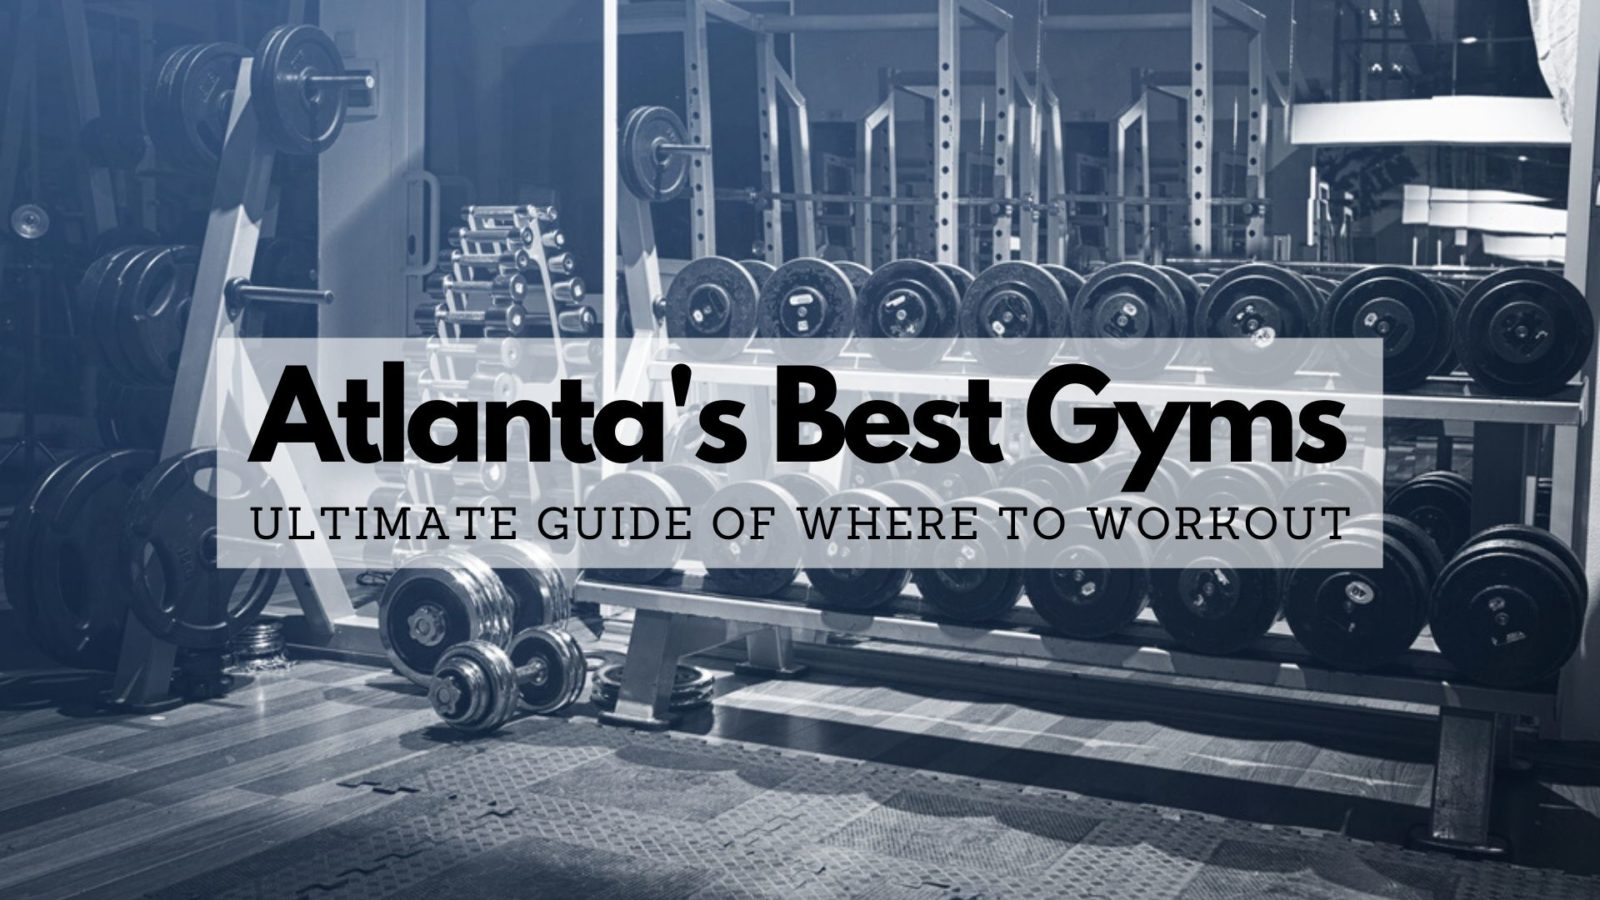 Atlanta S Best Gyms Ultimate Guide 2021 Where To Workout In Atlanta